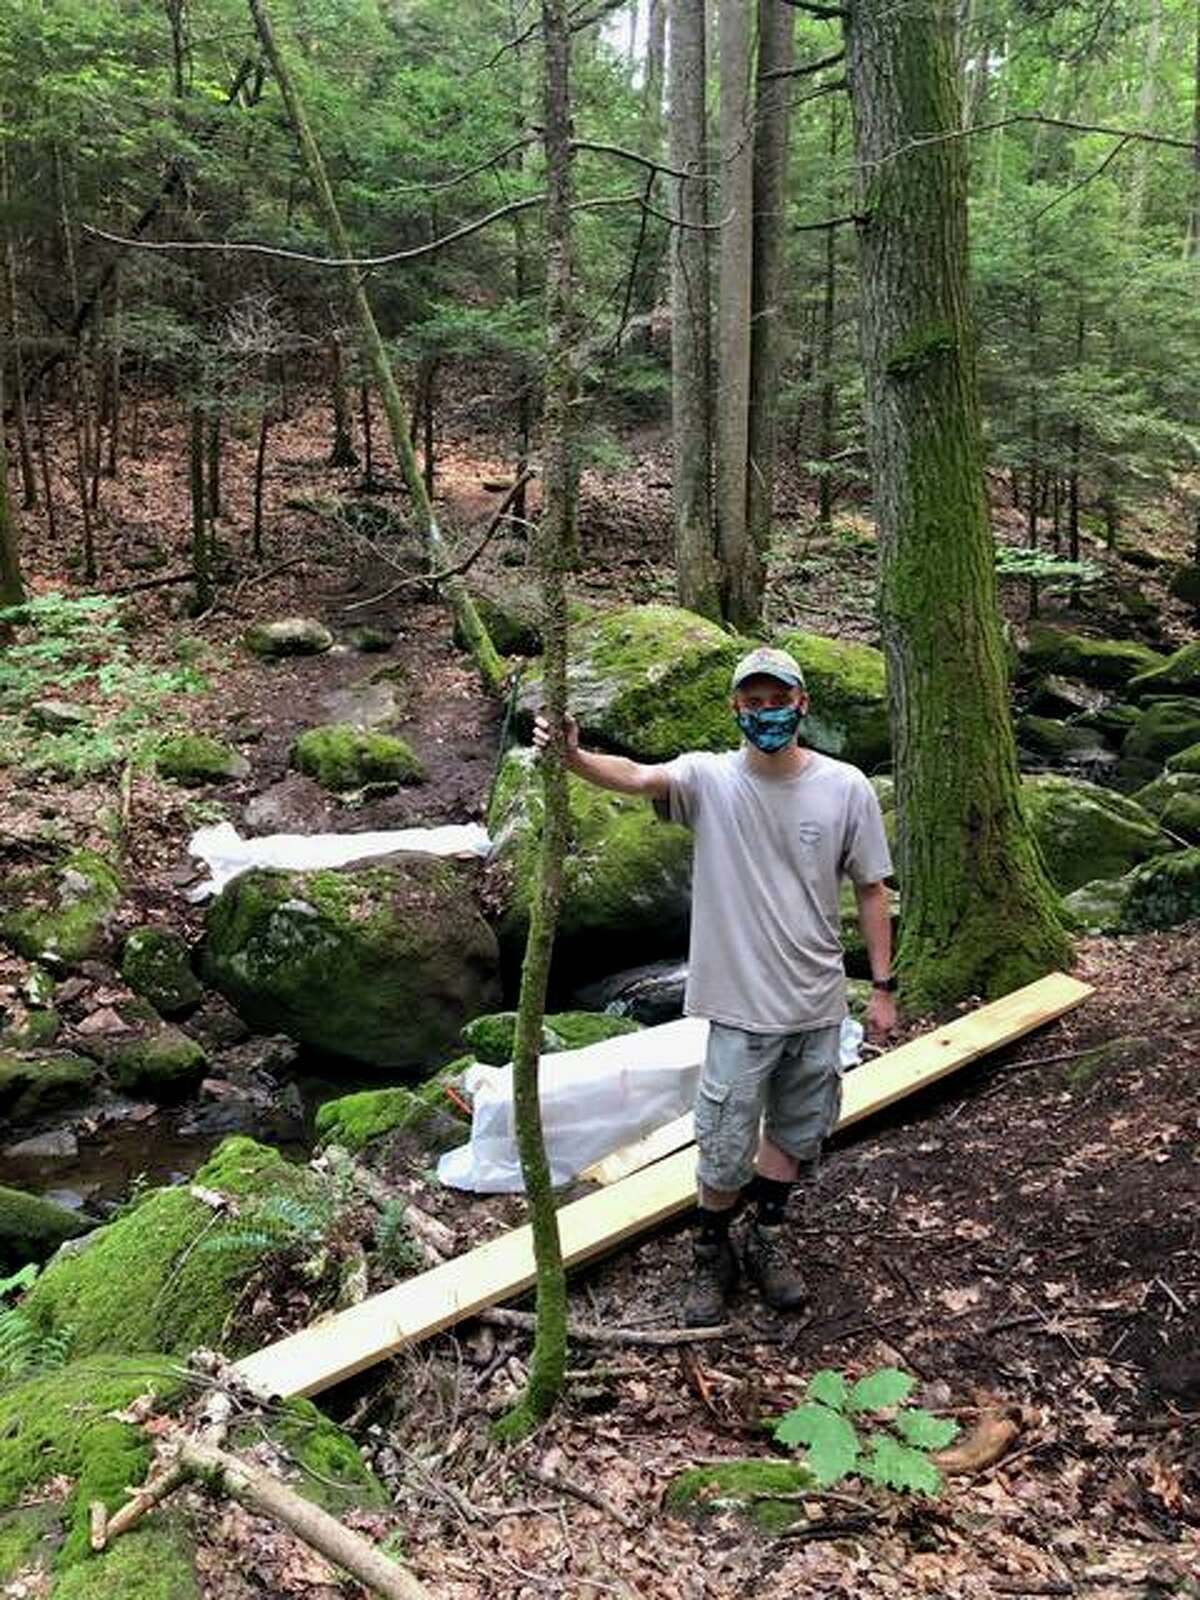 Korey Barber, a Boy Scout with the Housatonic Troop 27 Life Scout and a rising senior at Shelton High School, is organizing construction of a bridge crossing Round Hill Brook on the Paugussett trail.